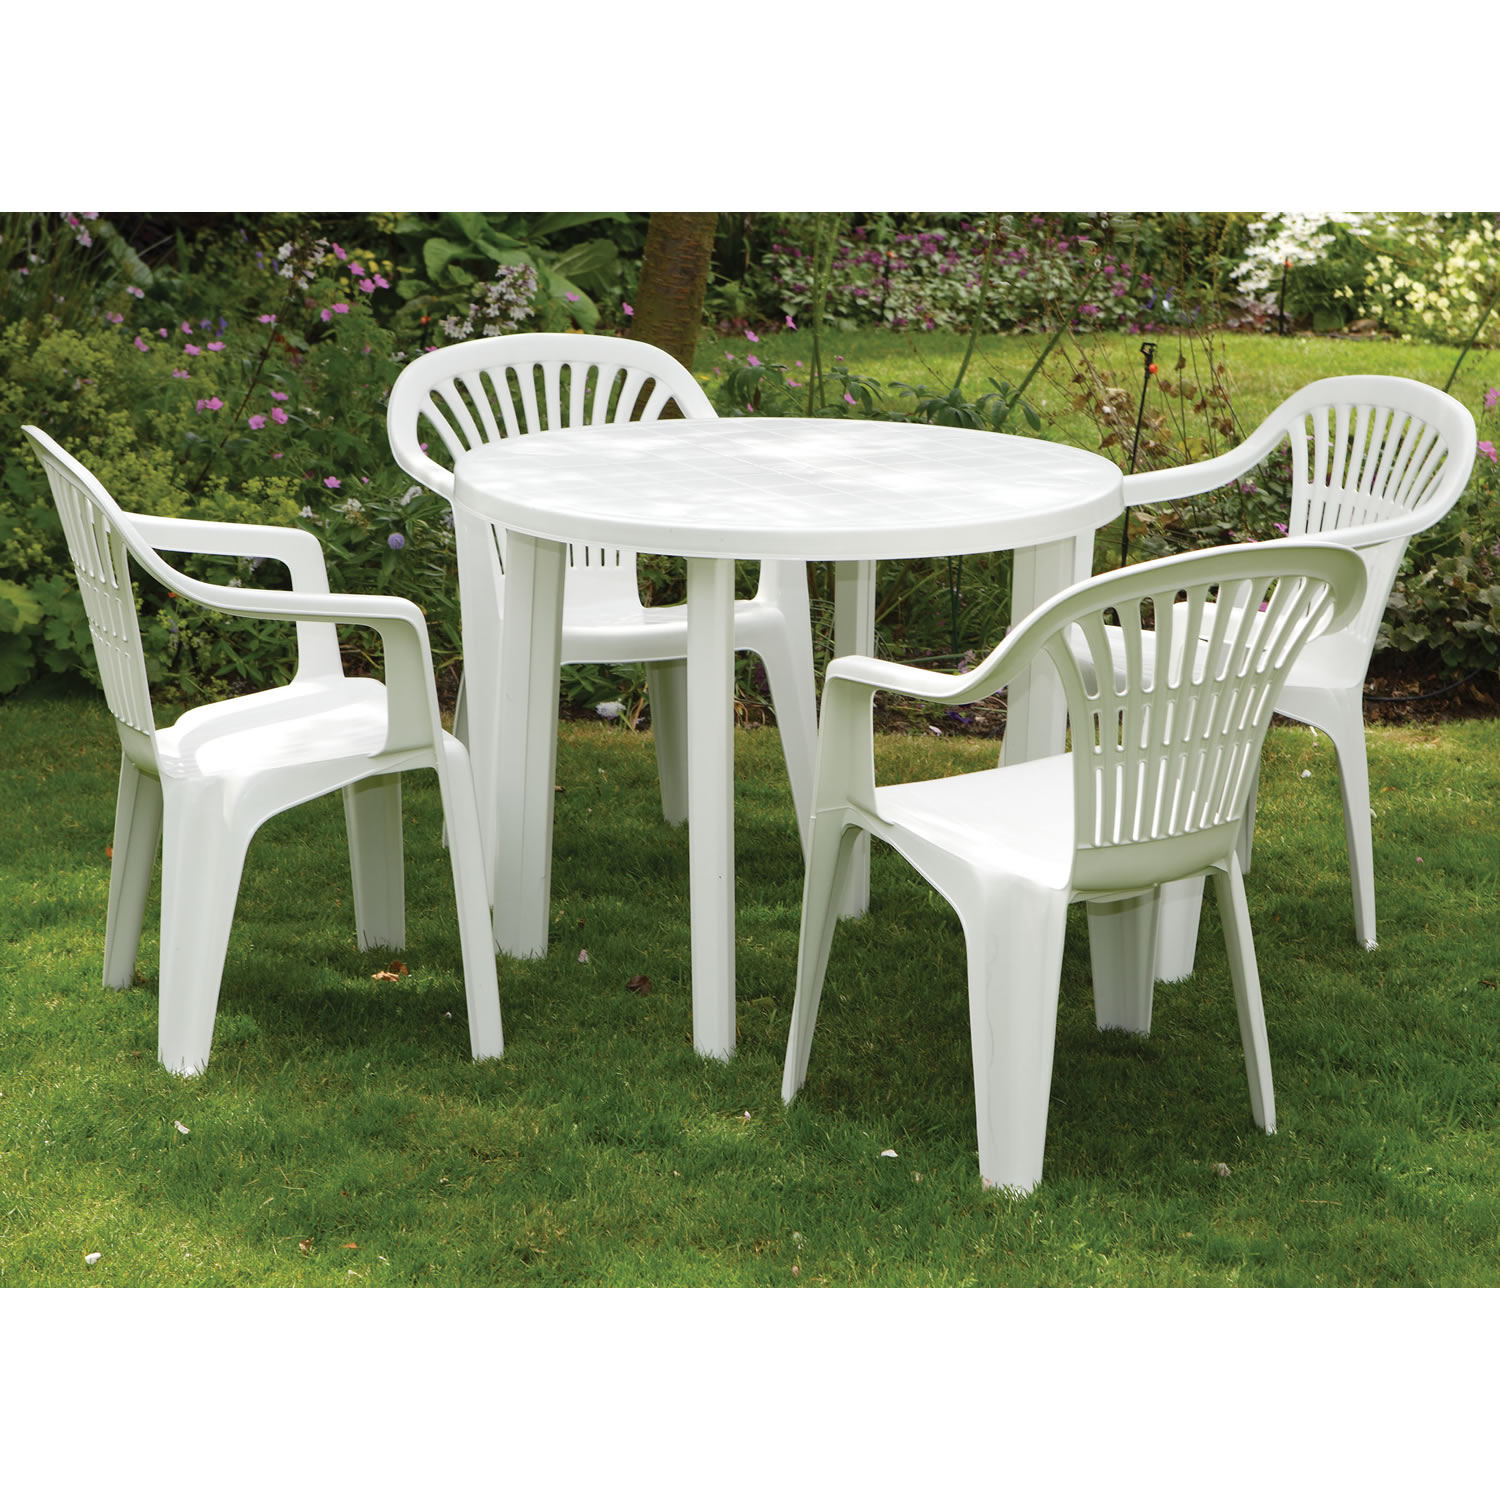 cheap plastic garden furniture jdy69et GOJFUOK